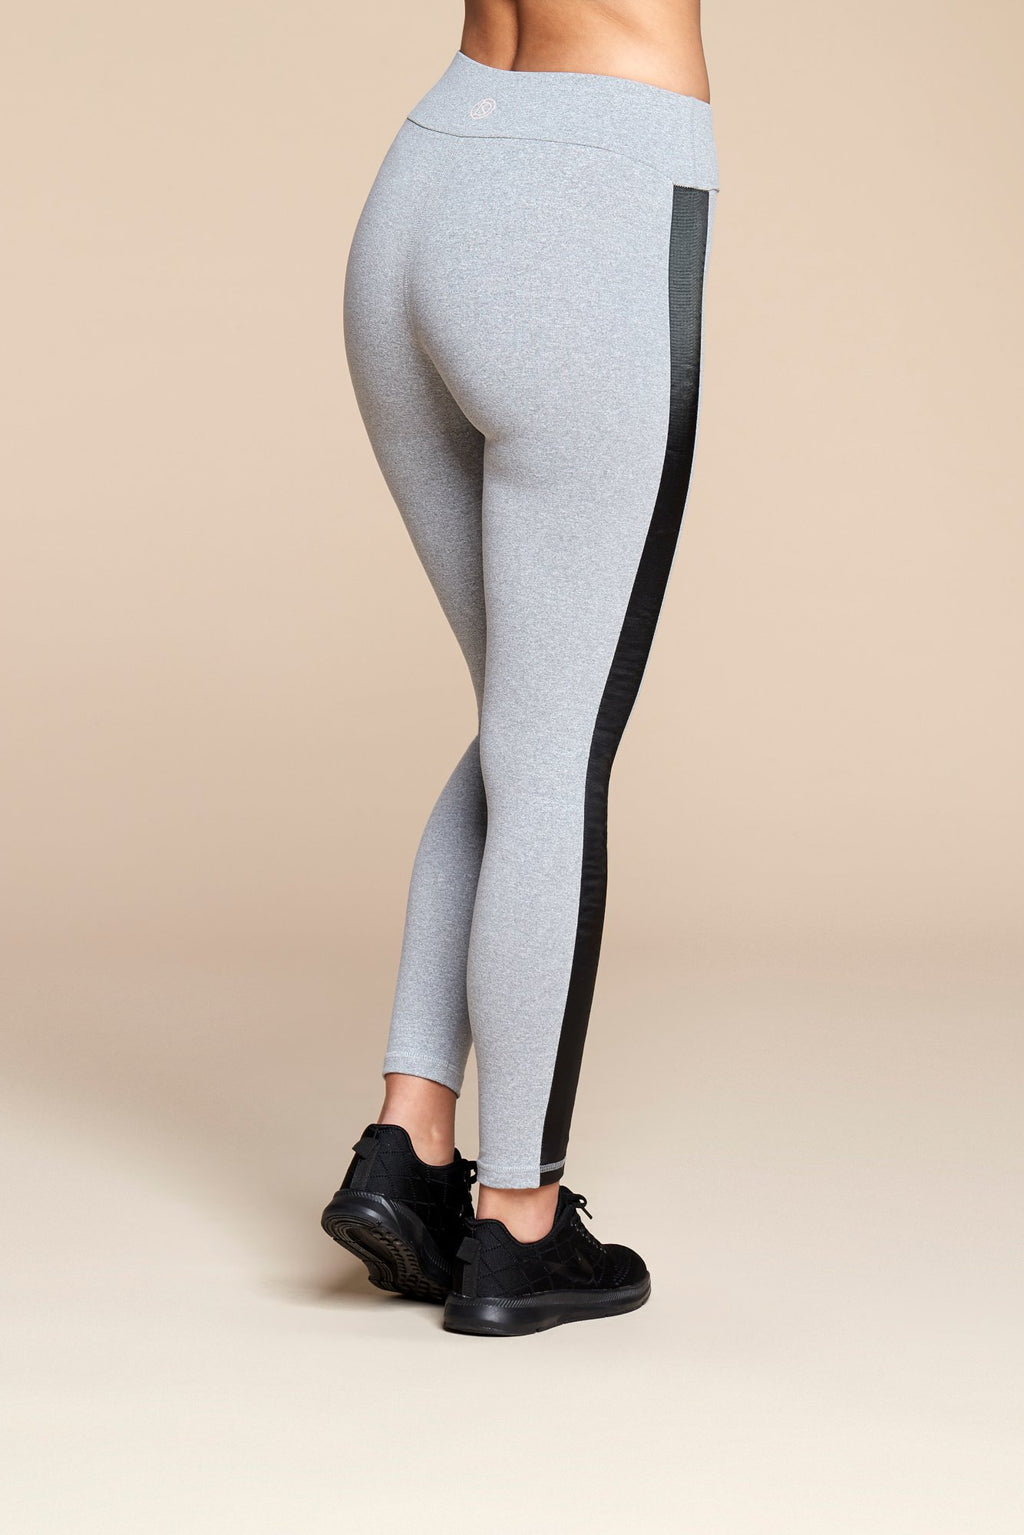 Kysal Legging William XS activewear sport